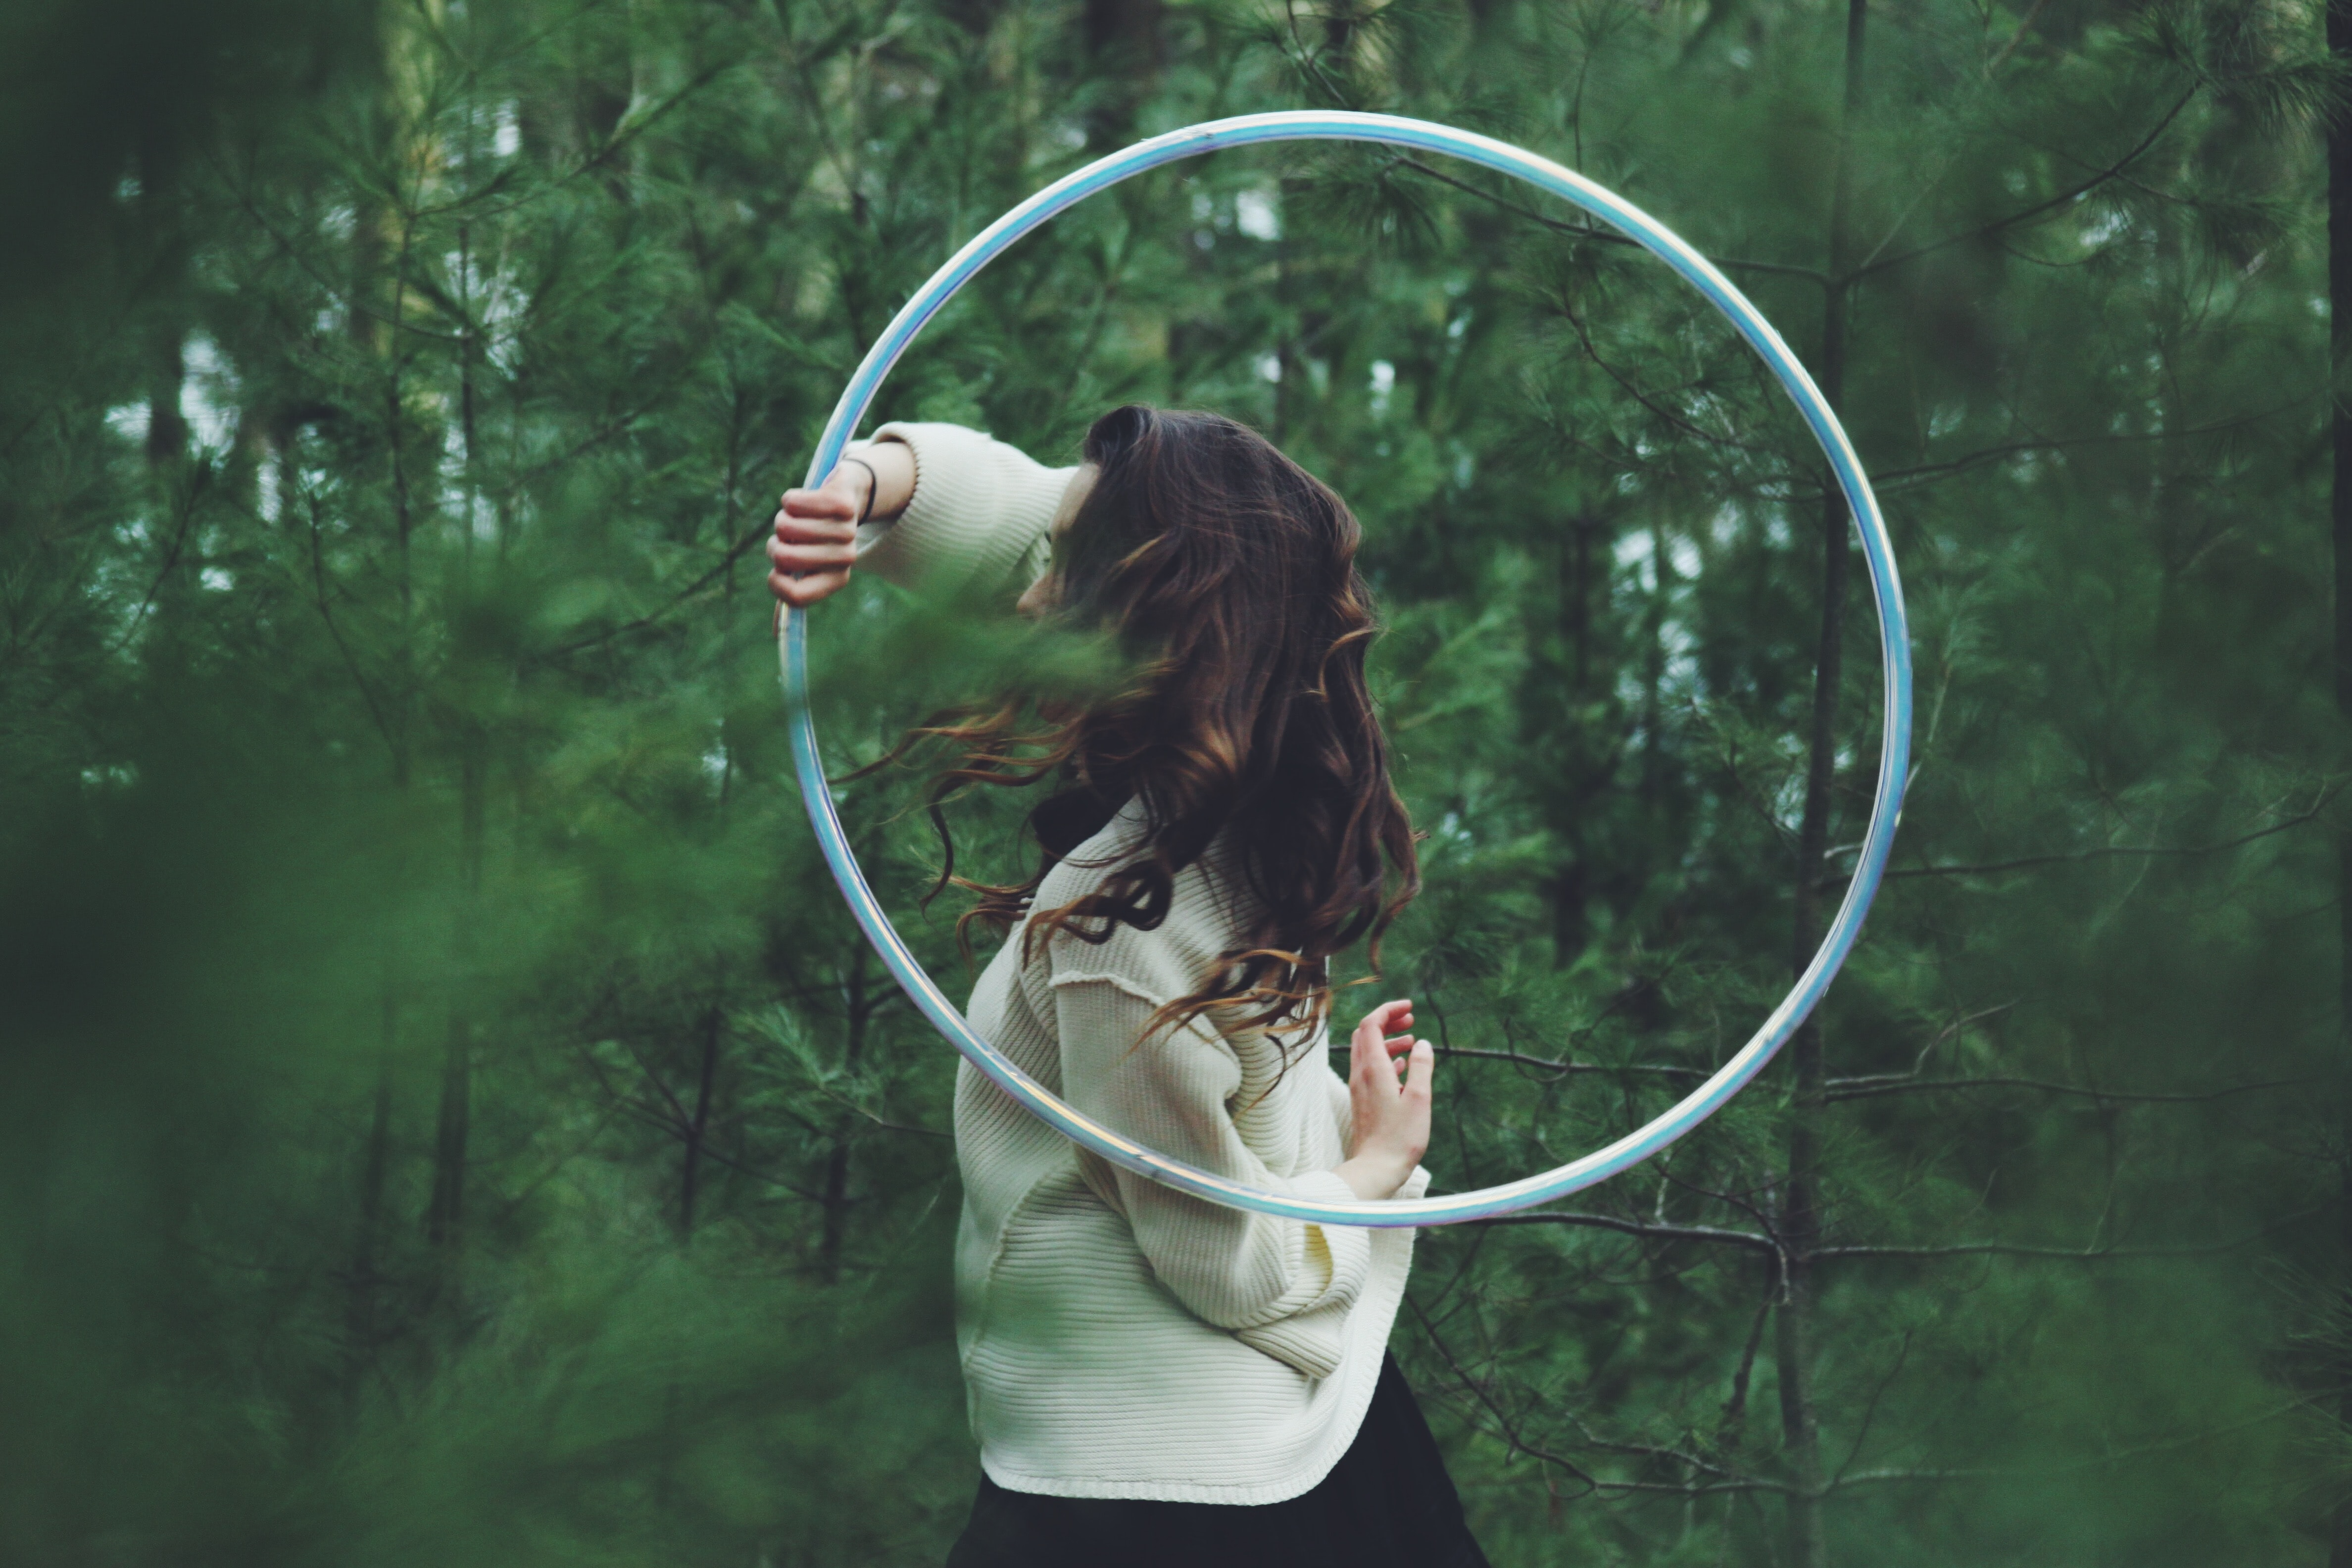 A woman with a hula hoop in a dense forest